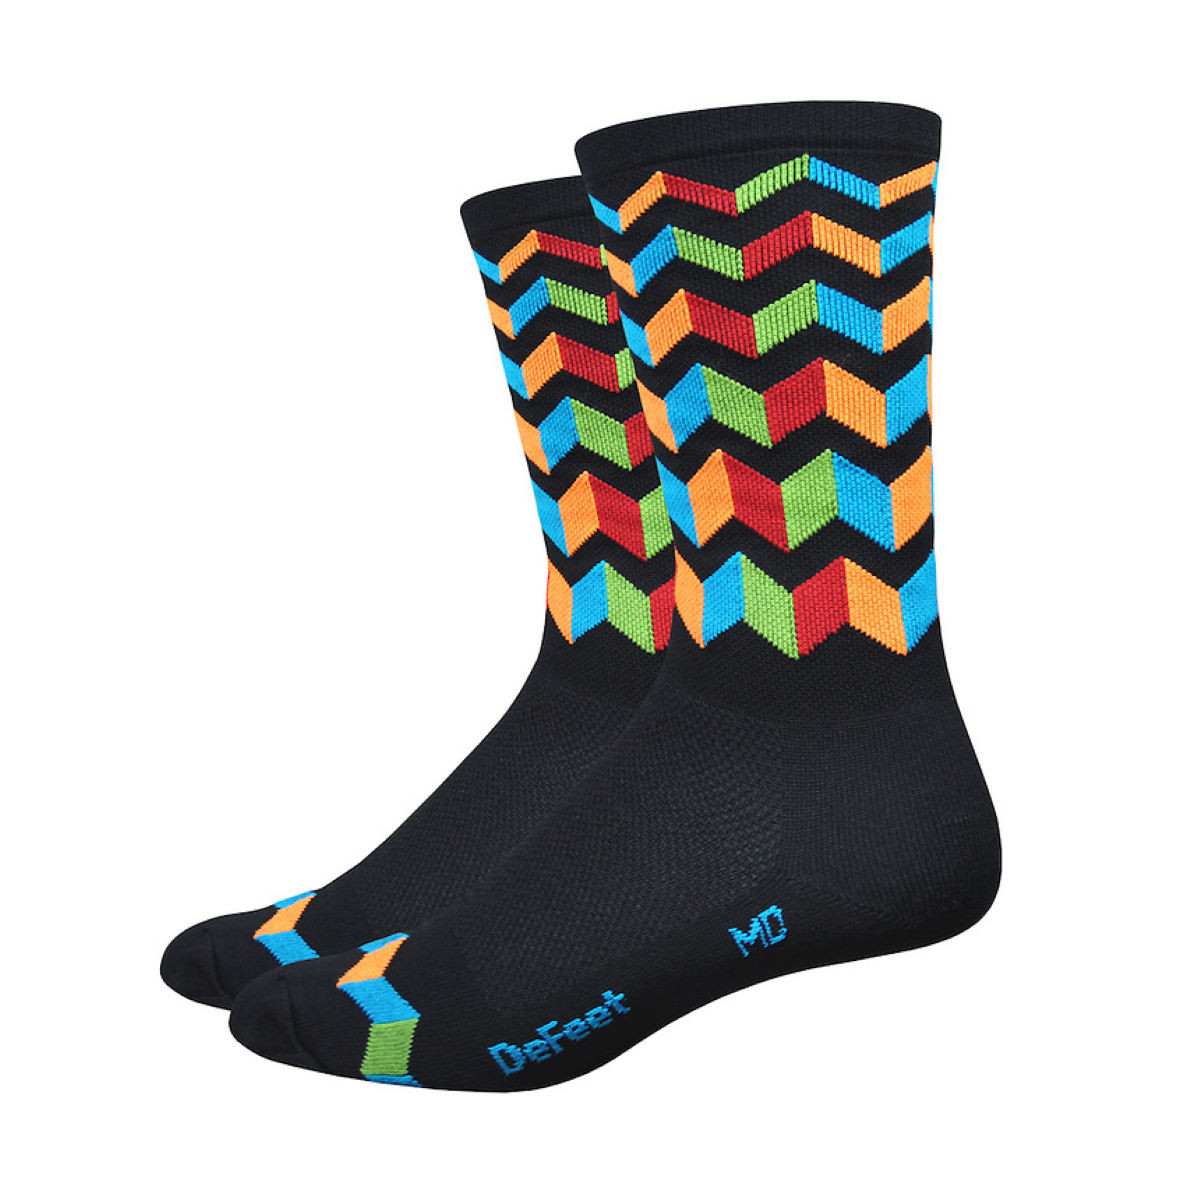 Chaussettes DeFeet Aireator Jitterbug (15 cm environ) - S